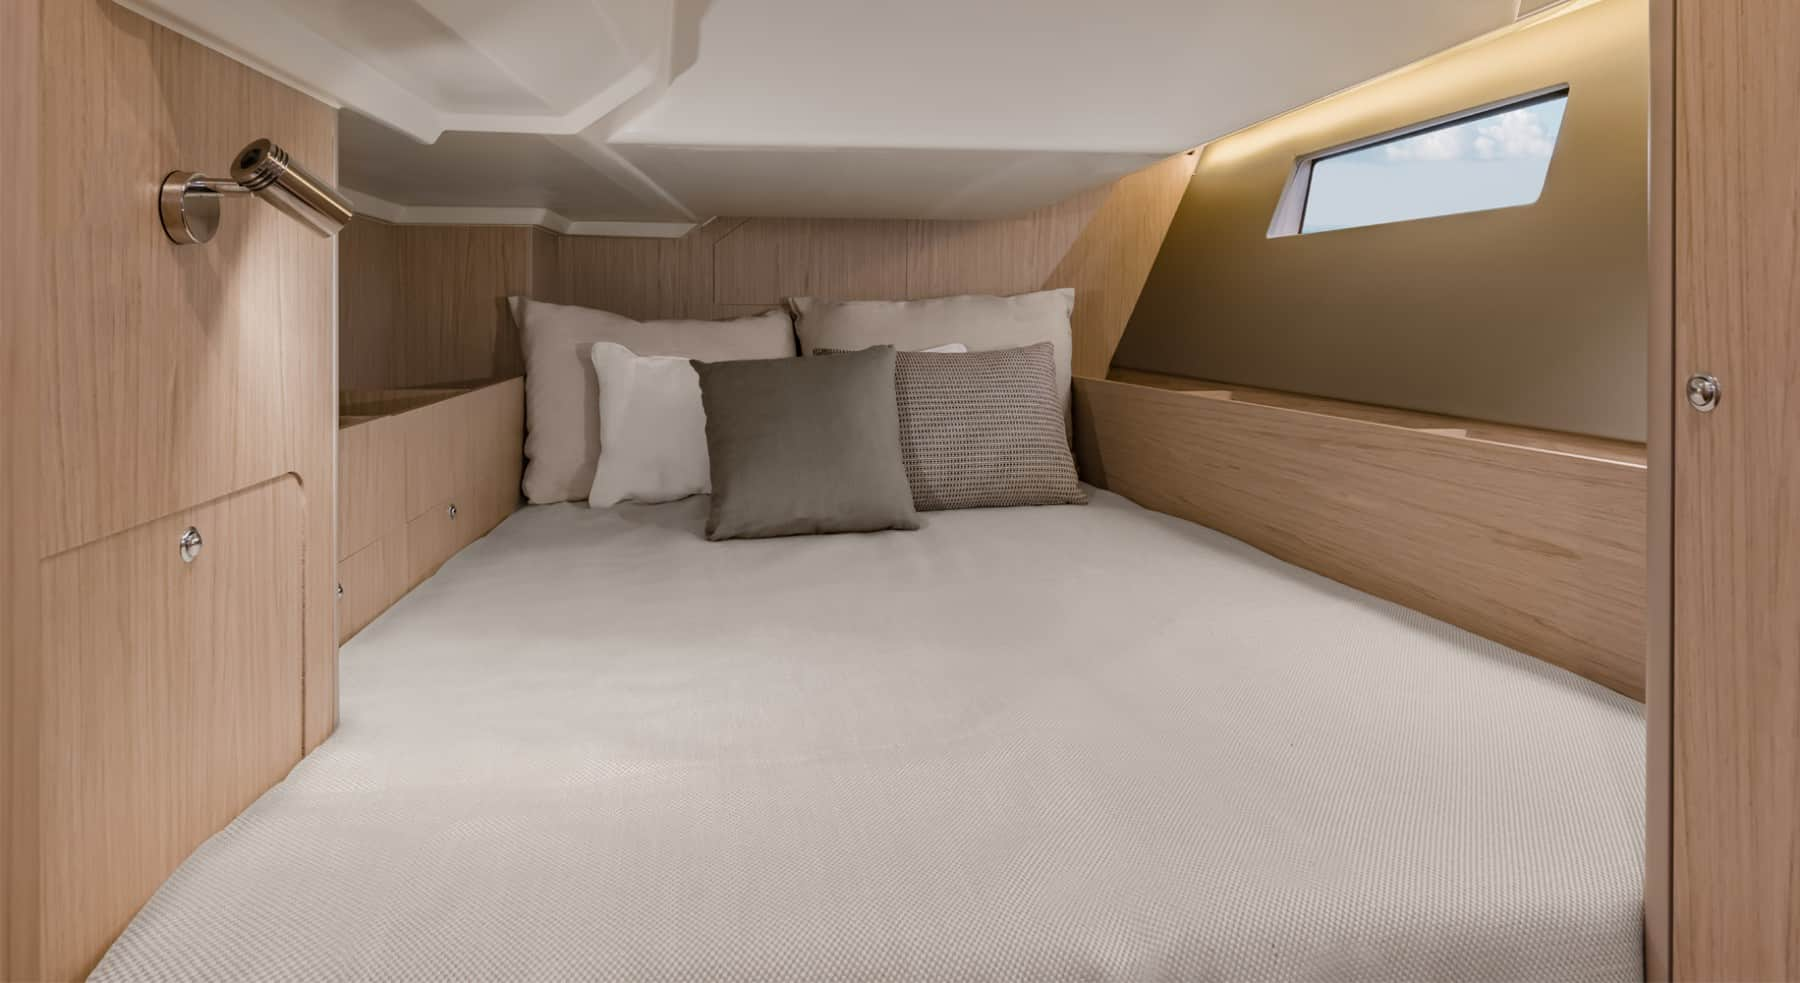 Comfy and massive double bed option in the cabins with beautiful color options